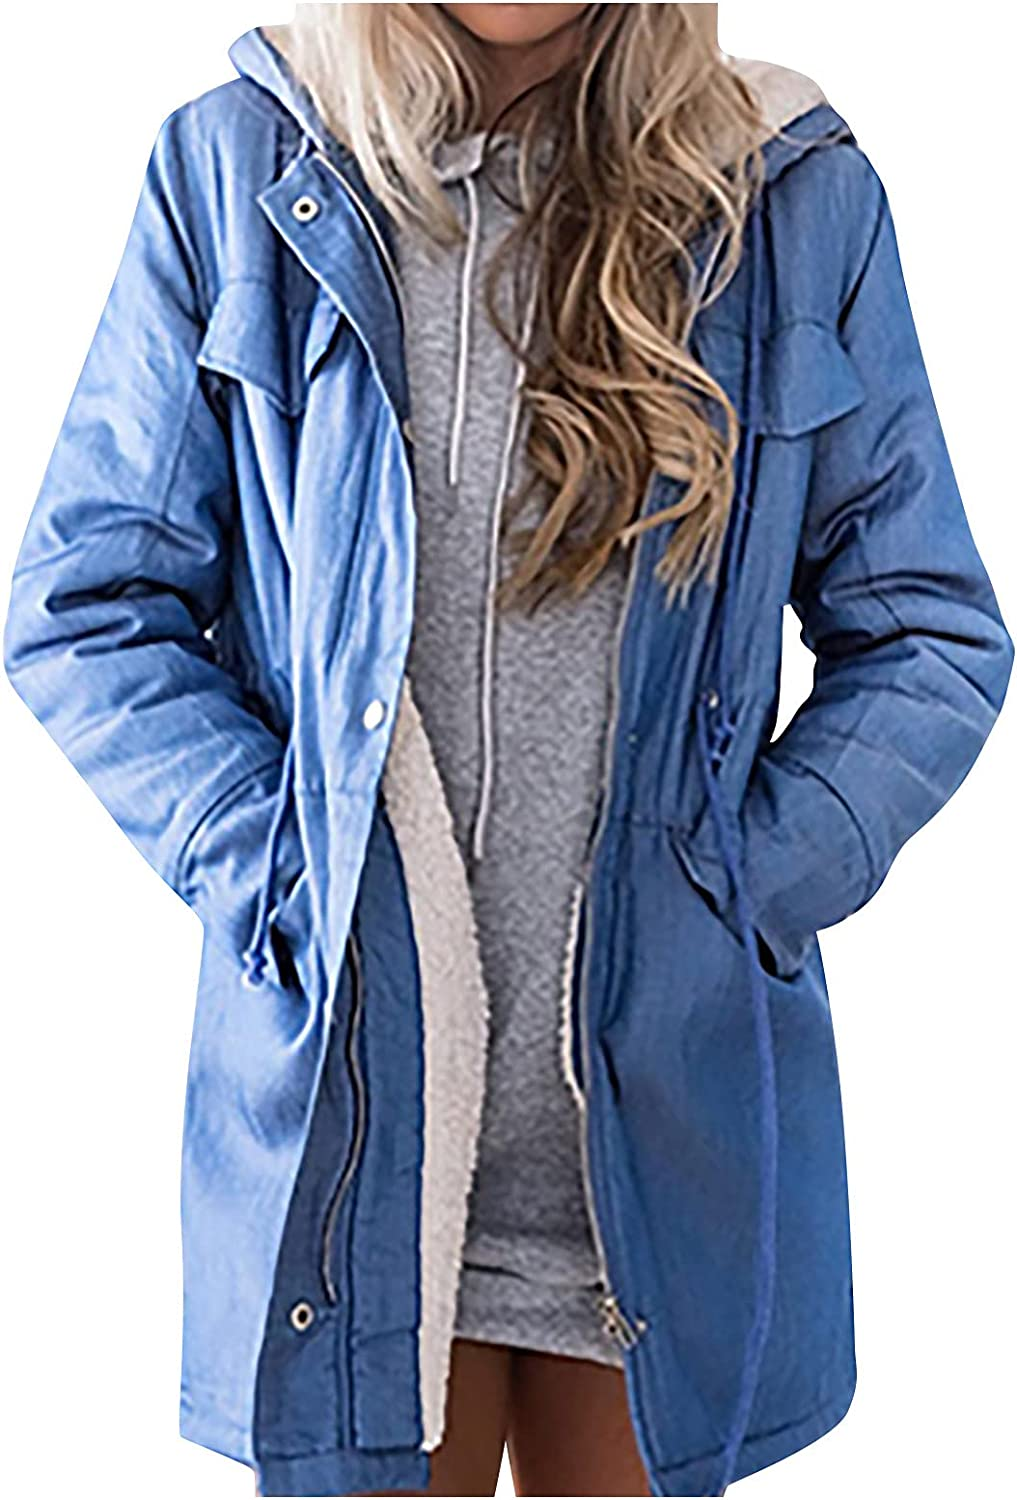 Women'S Winter Outdoor Windproof Long-Sleeved Jacket Solid Color Denim Composite Plush Hooded Jacket With Pockets